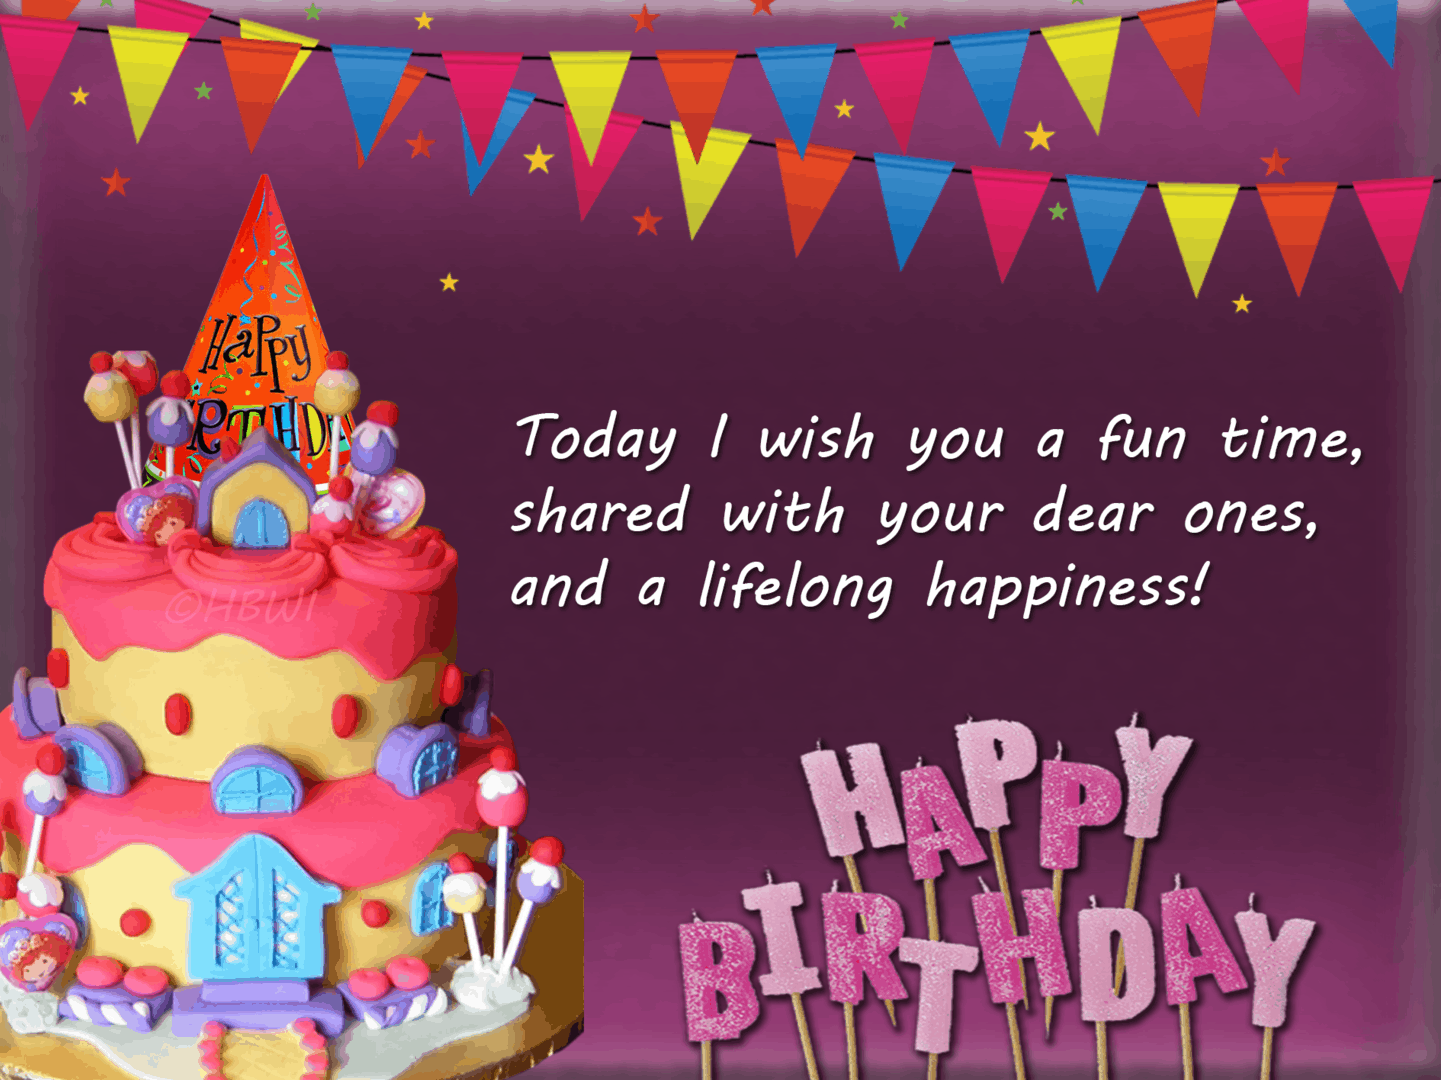 Funny Birthday wish.